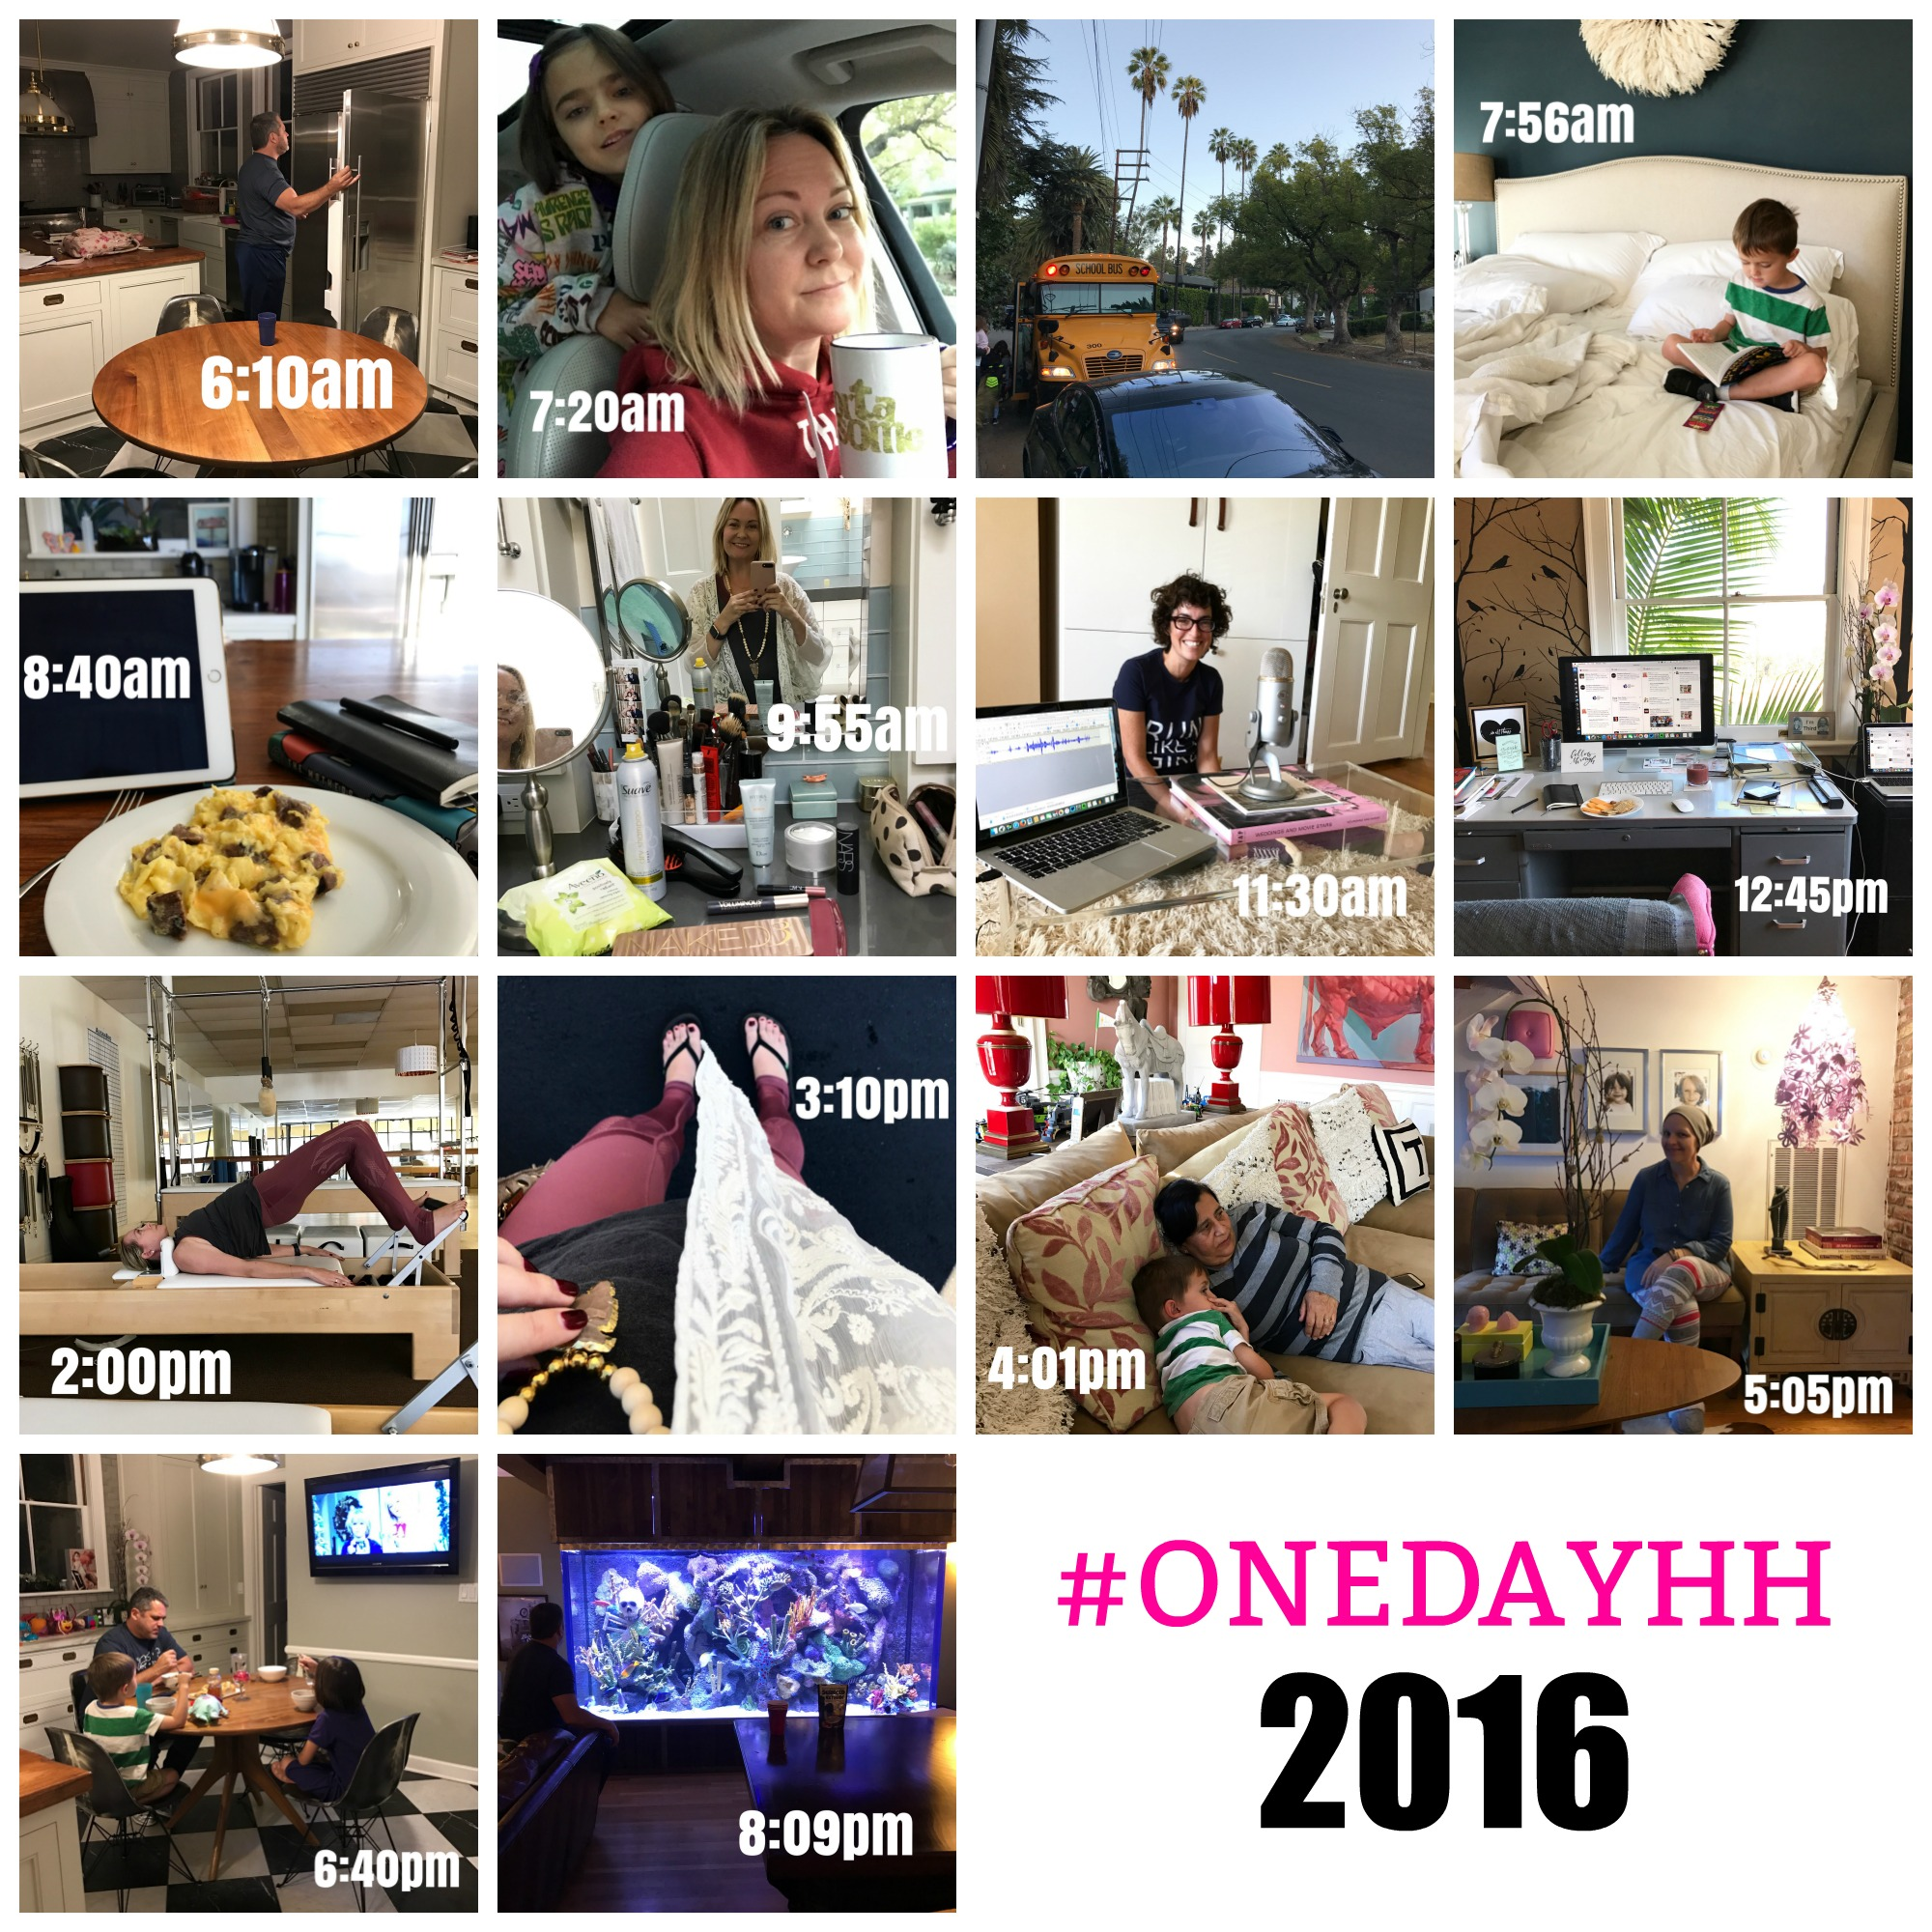 #ONEDAYHH 2016 collage.jpg